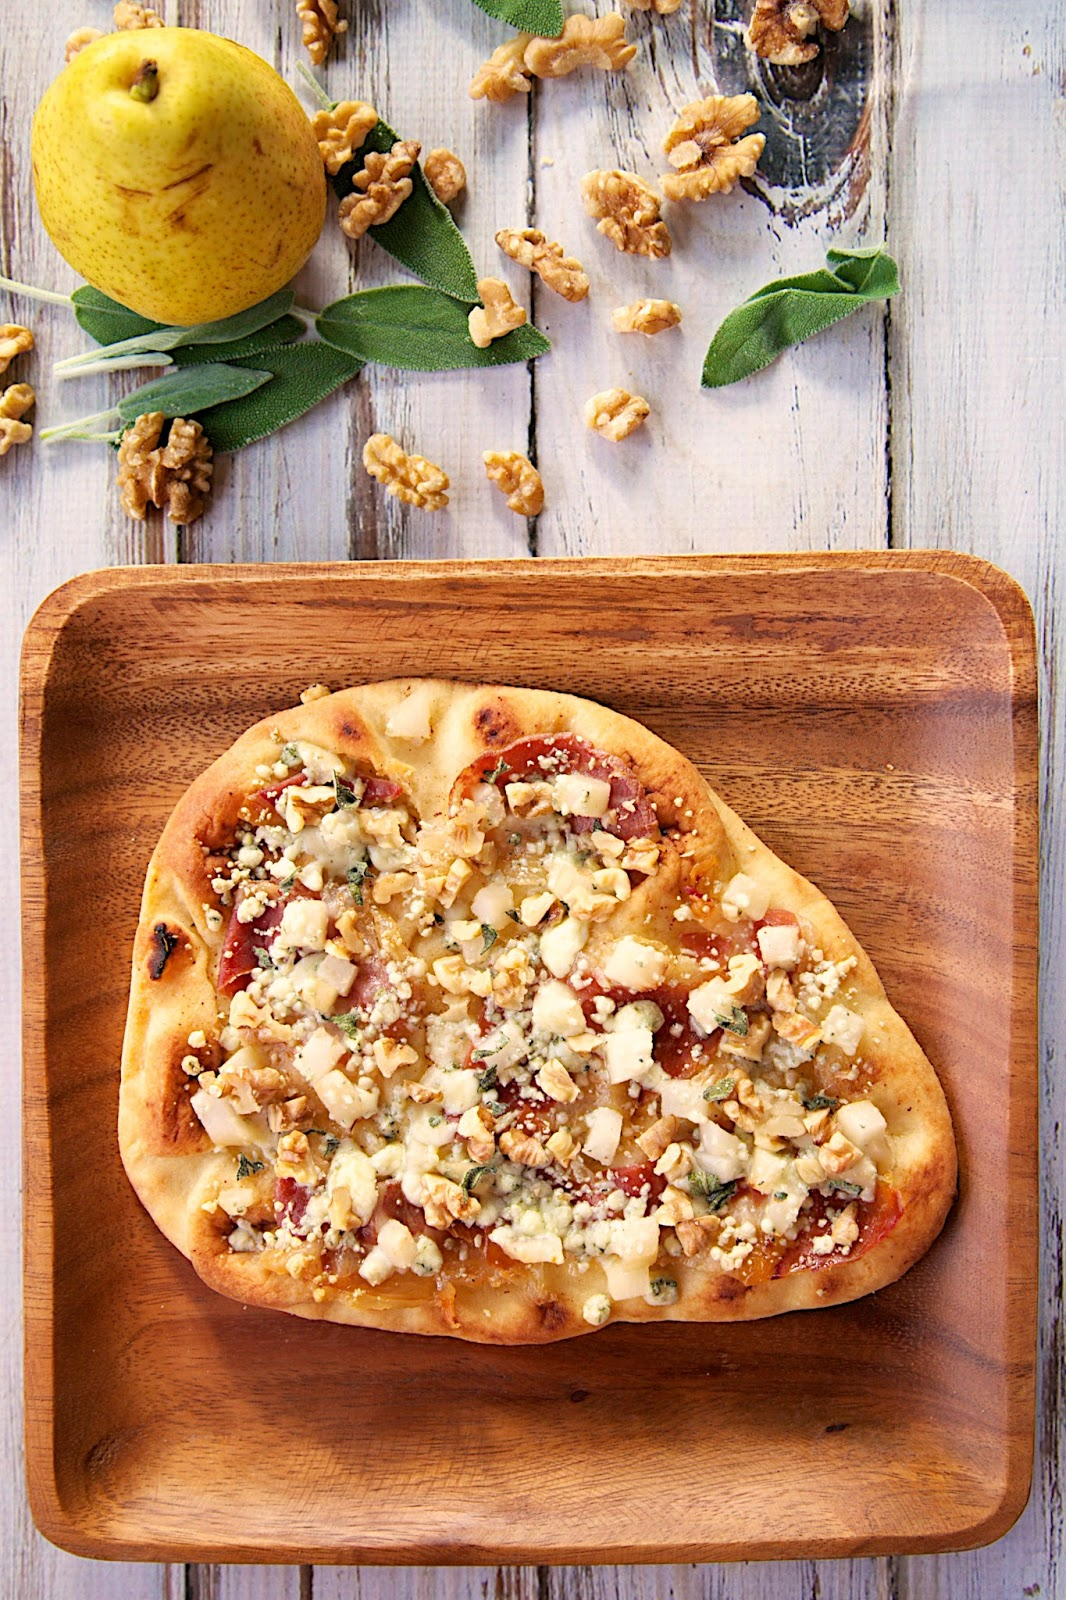 Pear & Gorgonzola Flatbread Recipe - Naan flatbreads topped with browned butter, pears, prosciutto, gorgonzola, walnuts and sage - the flavor combination is delicious! We ate these twice in one week!